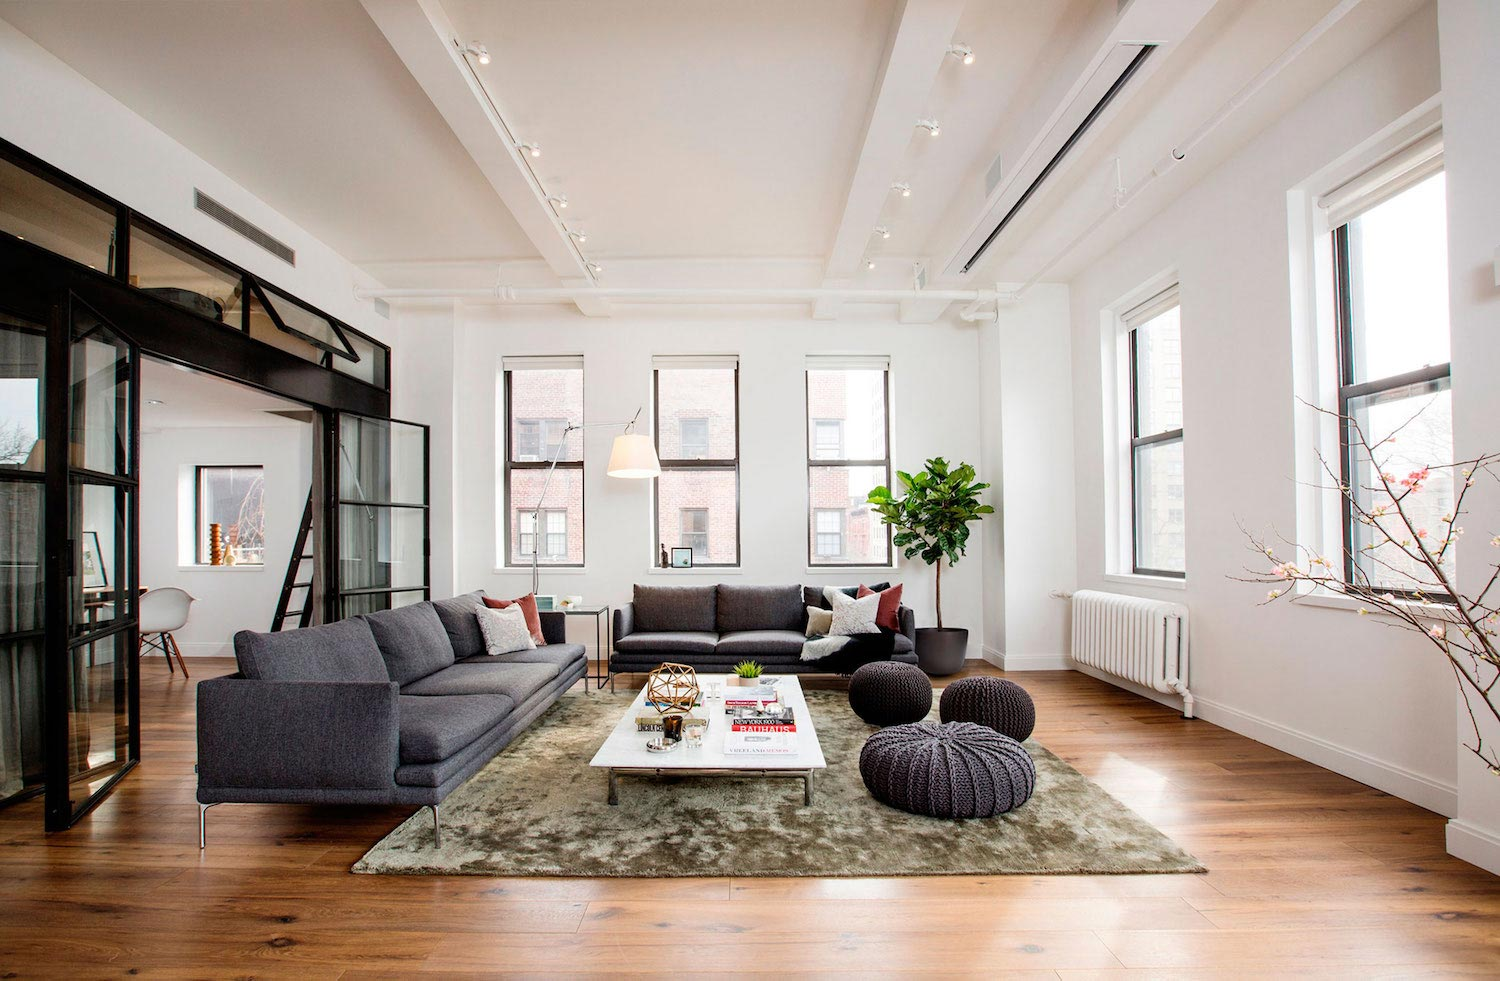 The East Village Loft occupies a wing of what was once a small ...